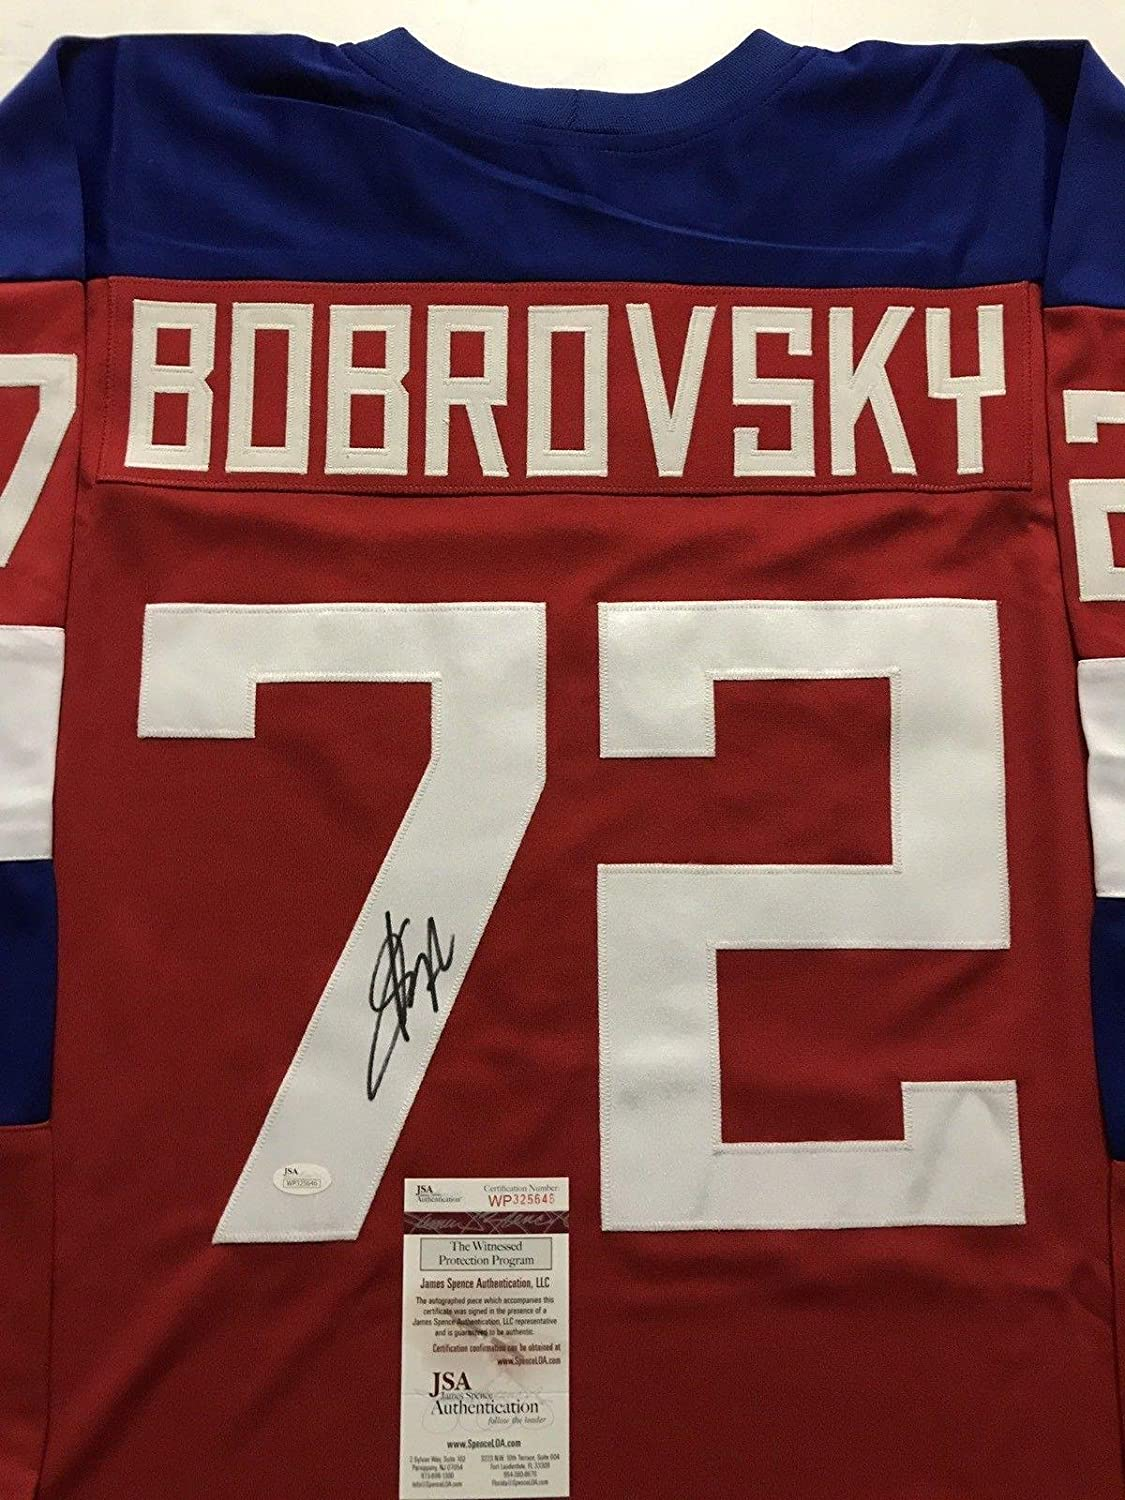 f33d6e5b951 Amazon.com  Autographed Sergei Bobrovsky Jersey - Team Russia Red COA - JSA  Certified - Autographed NHL Jerseys  Sports Collectibles